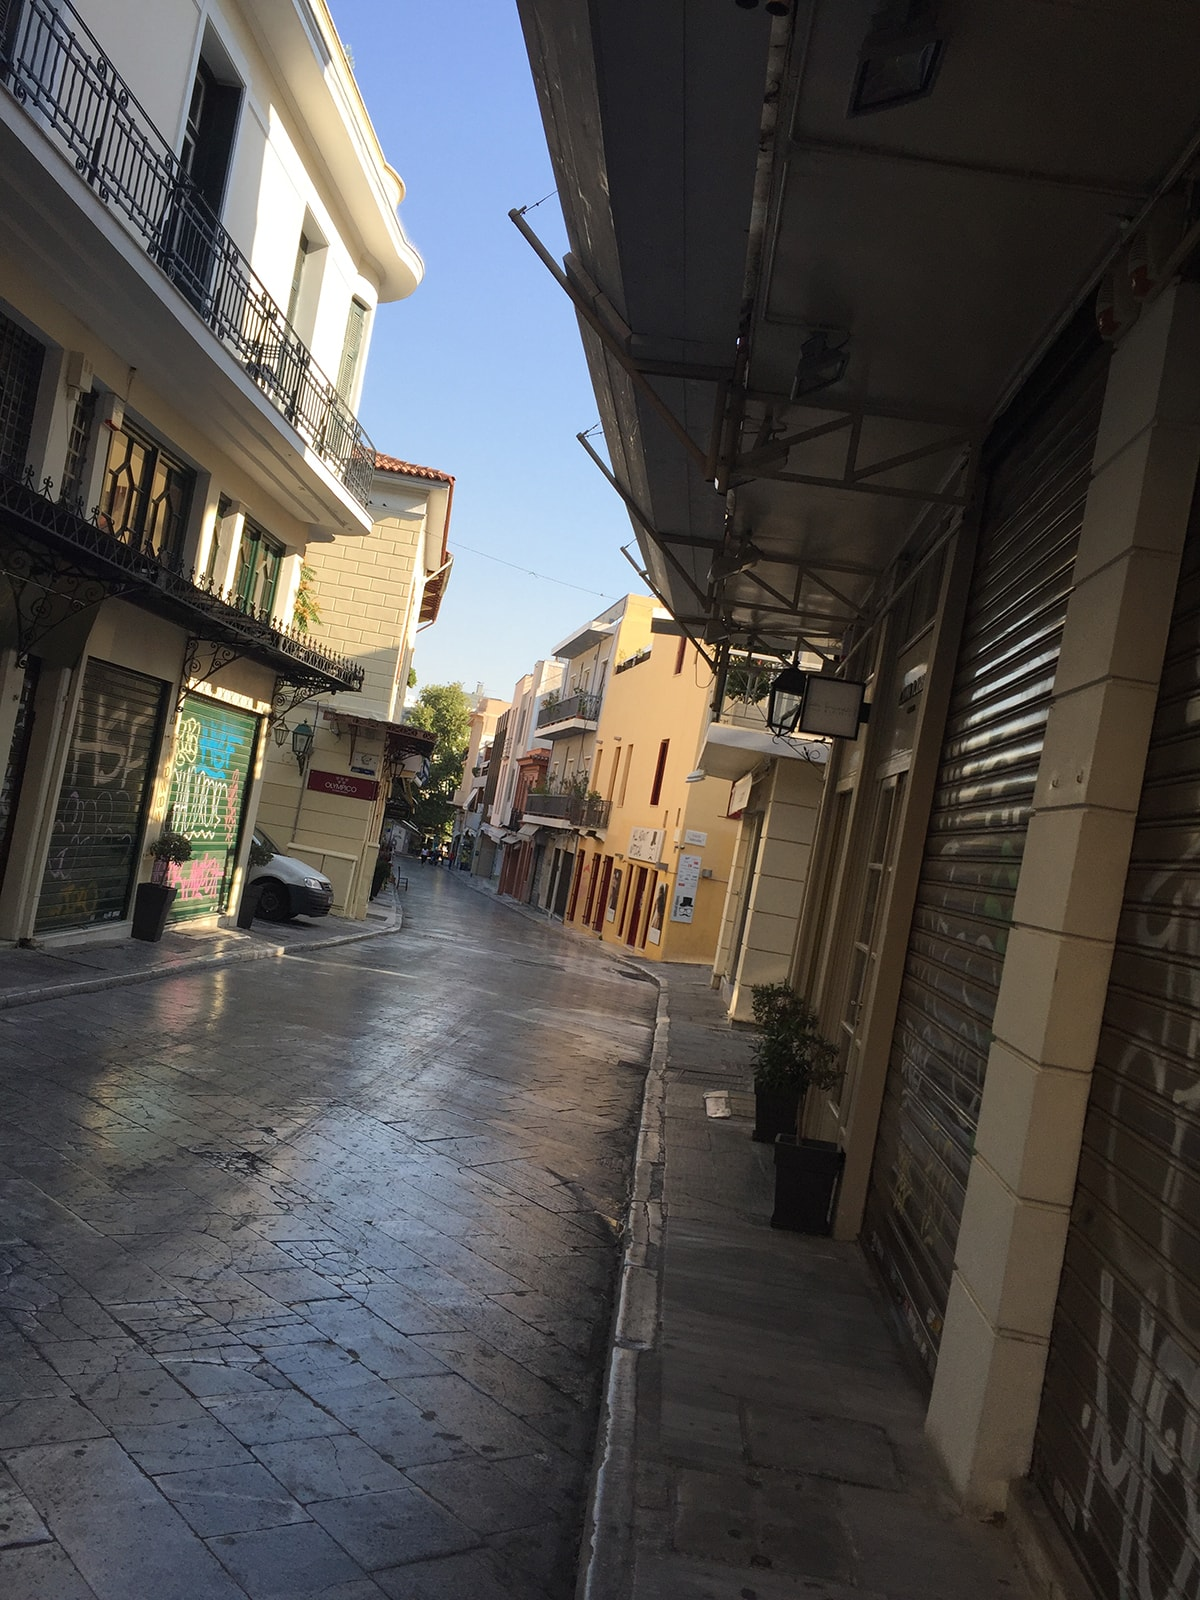 Street in the Greek neighborhood of Plaka in Athens